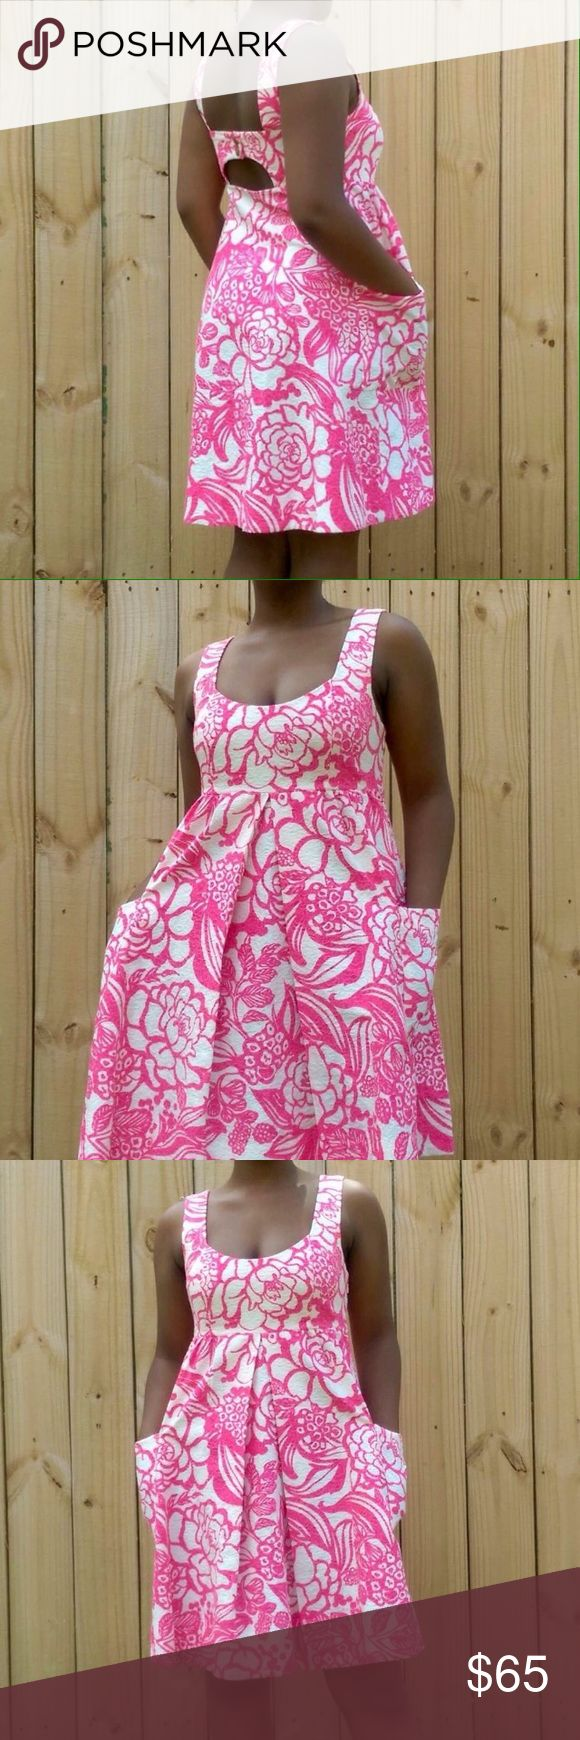 Anthro Garden Party Swing Dress Anthropologie Brand Vanessa Virginia Pink floral garden party Swing dress. Size 4. Gorgeous dress with pockets. Perfect for the summer time. Beautiful vibrant pink floral print. 100% cotton. Bust 17 waist 15 length 28. Anthropologie Dresses